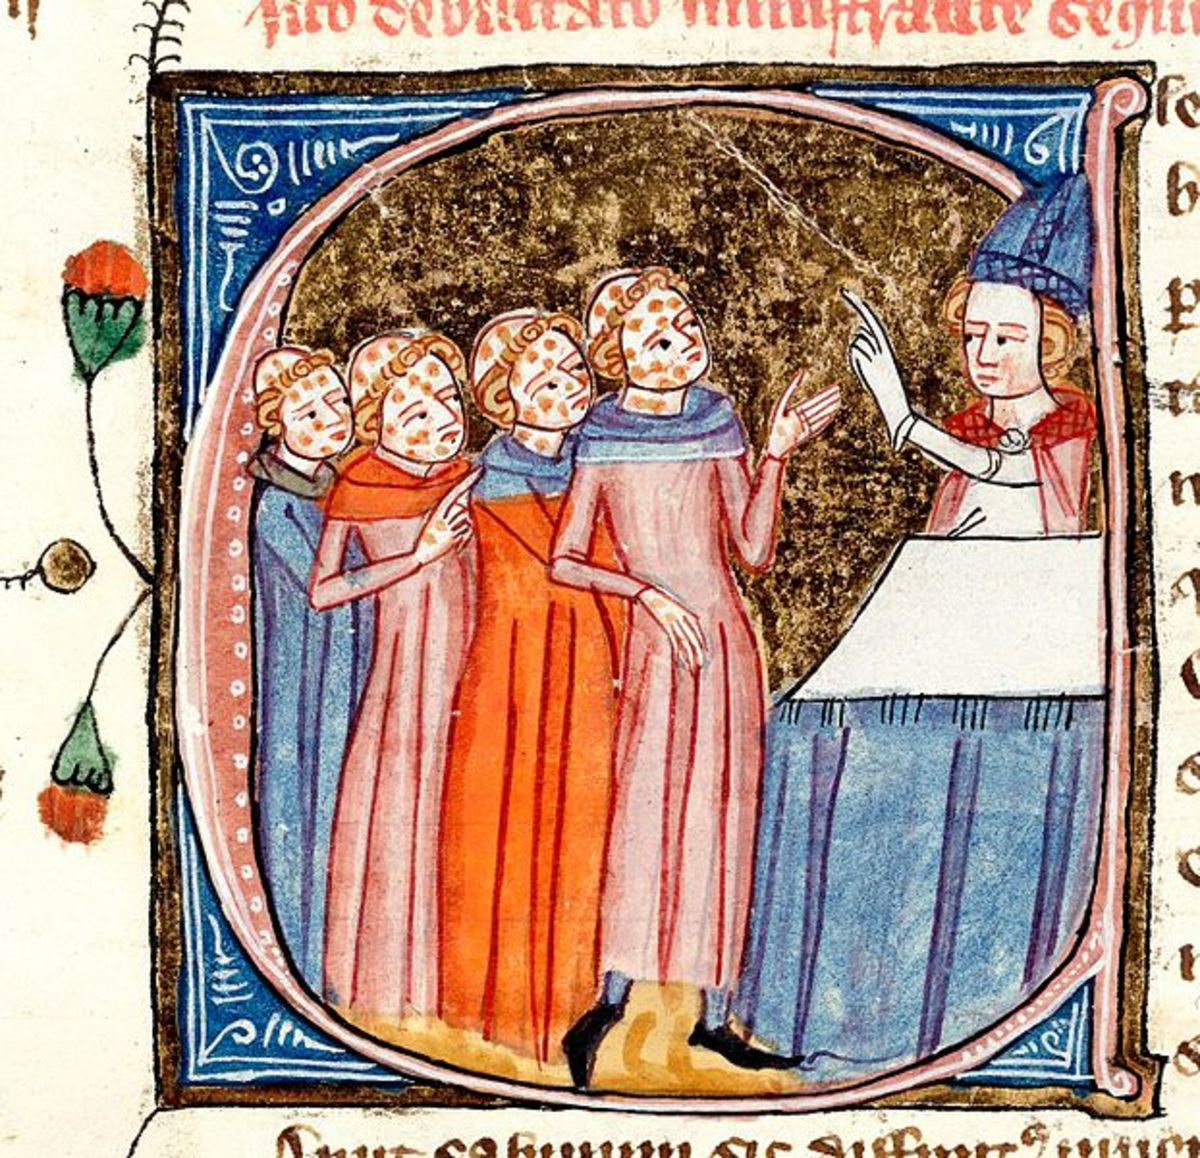 Monks, disfigured by the Black Death, being blessed by a priest. Source: a late 14th-century manuscript Omne Bonum by James le Palmer. Current location: British Library.